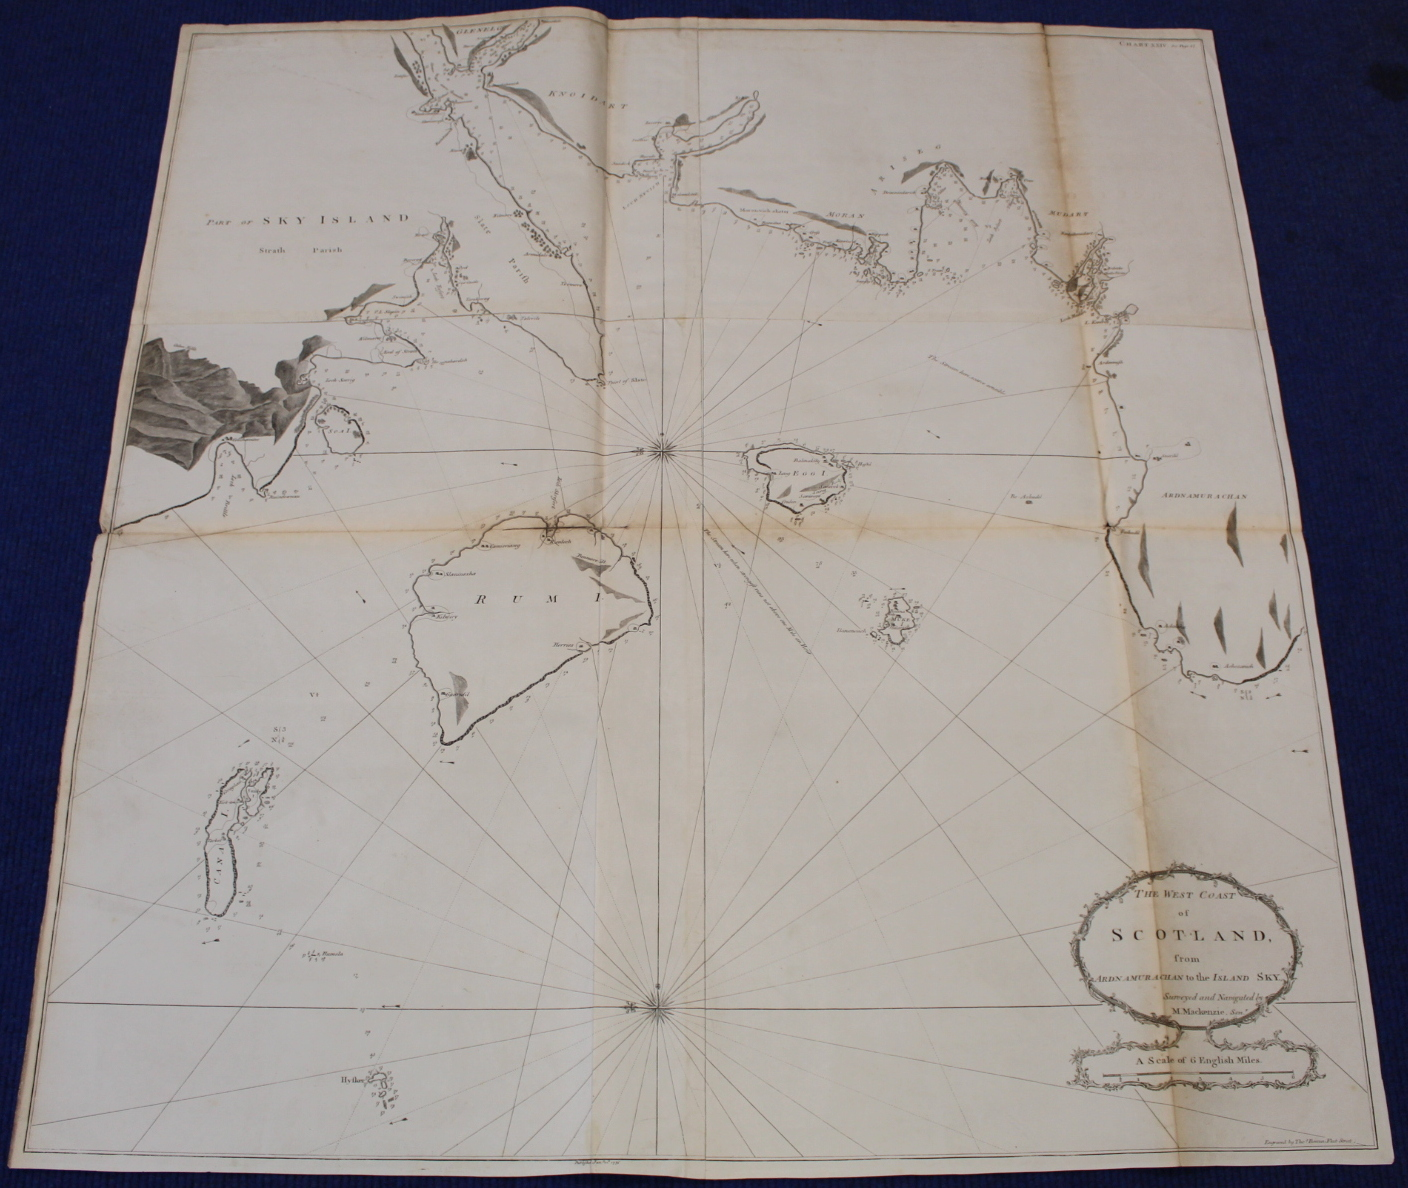 MACKENZIE MURDOCH (SNR.).A General Chart of the West Coast & Western Islands of Scotland from - Image 11 of 66